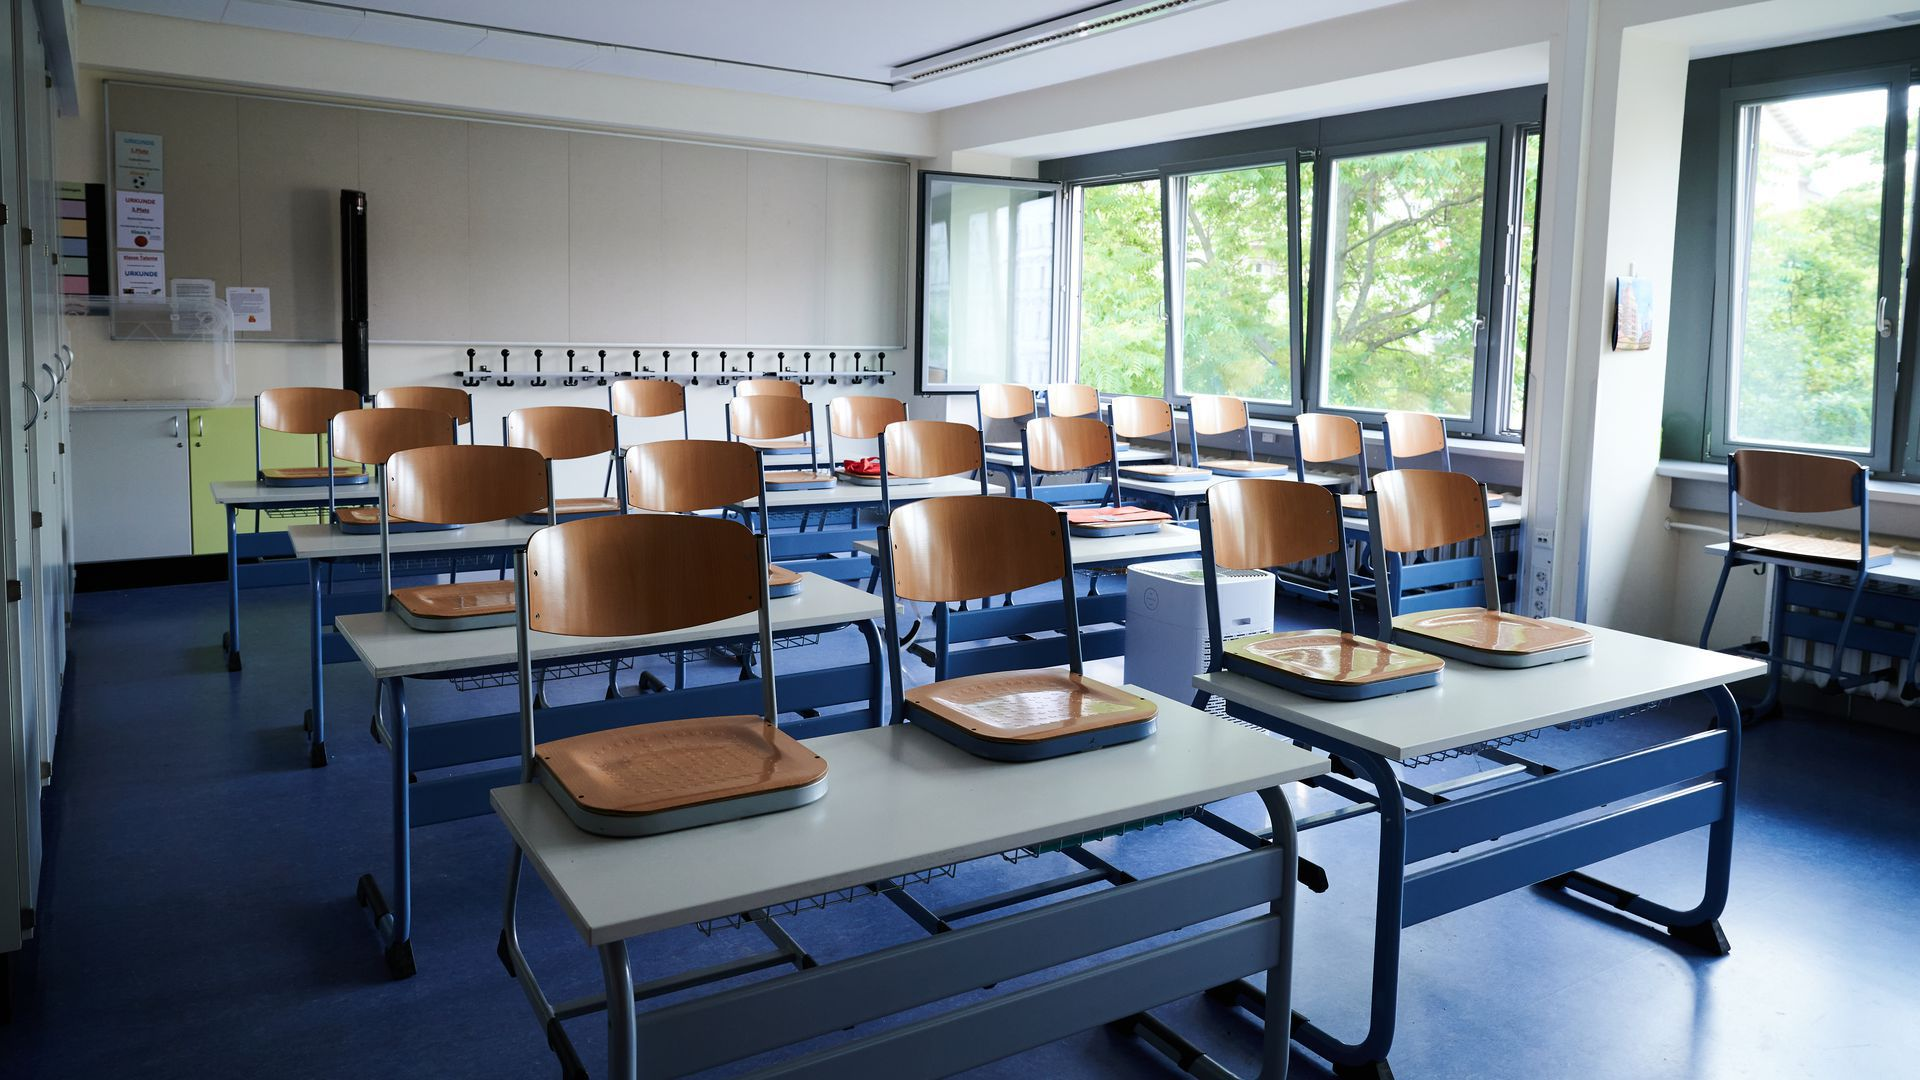 Empty school desks and chairs stacked on top in a classroom.